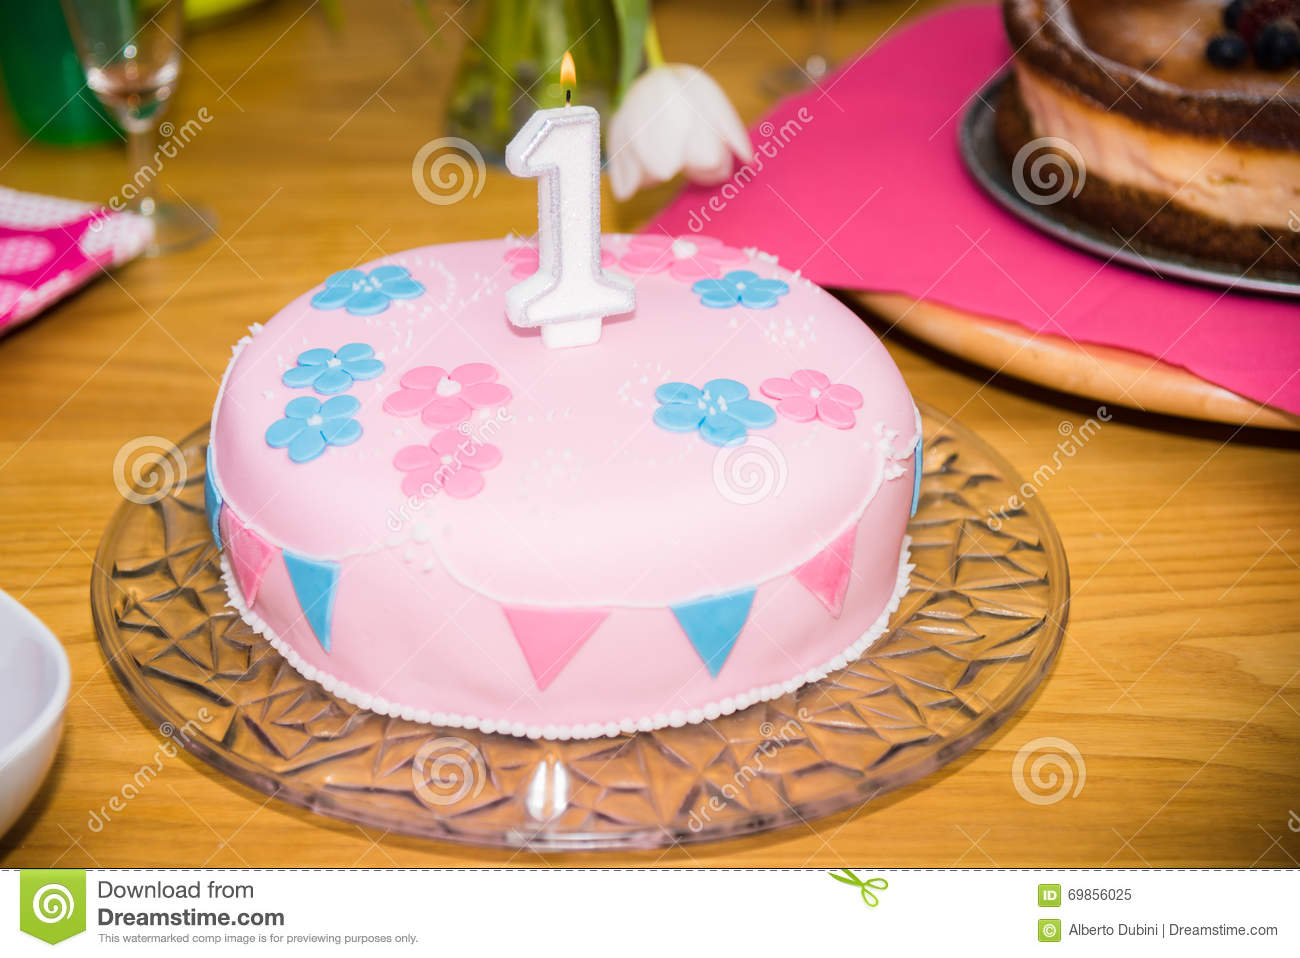 Birthday Cake 1 Year Stock Image Image Of Cakes Decorative 69856025